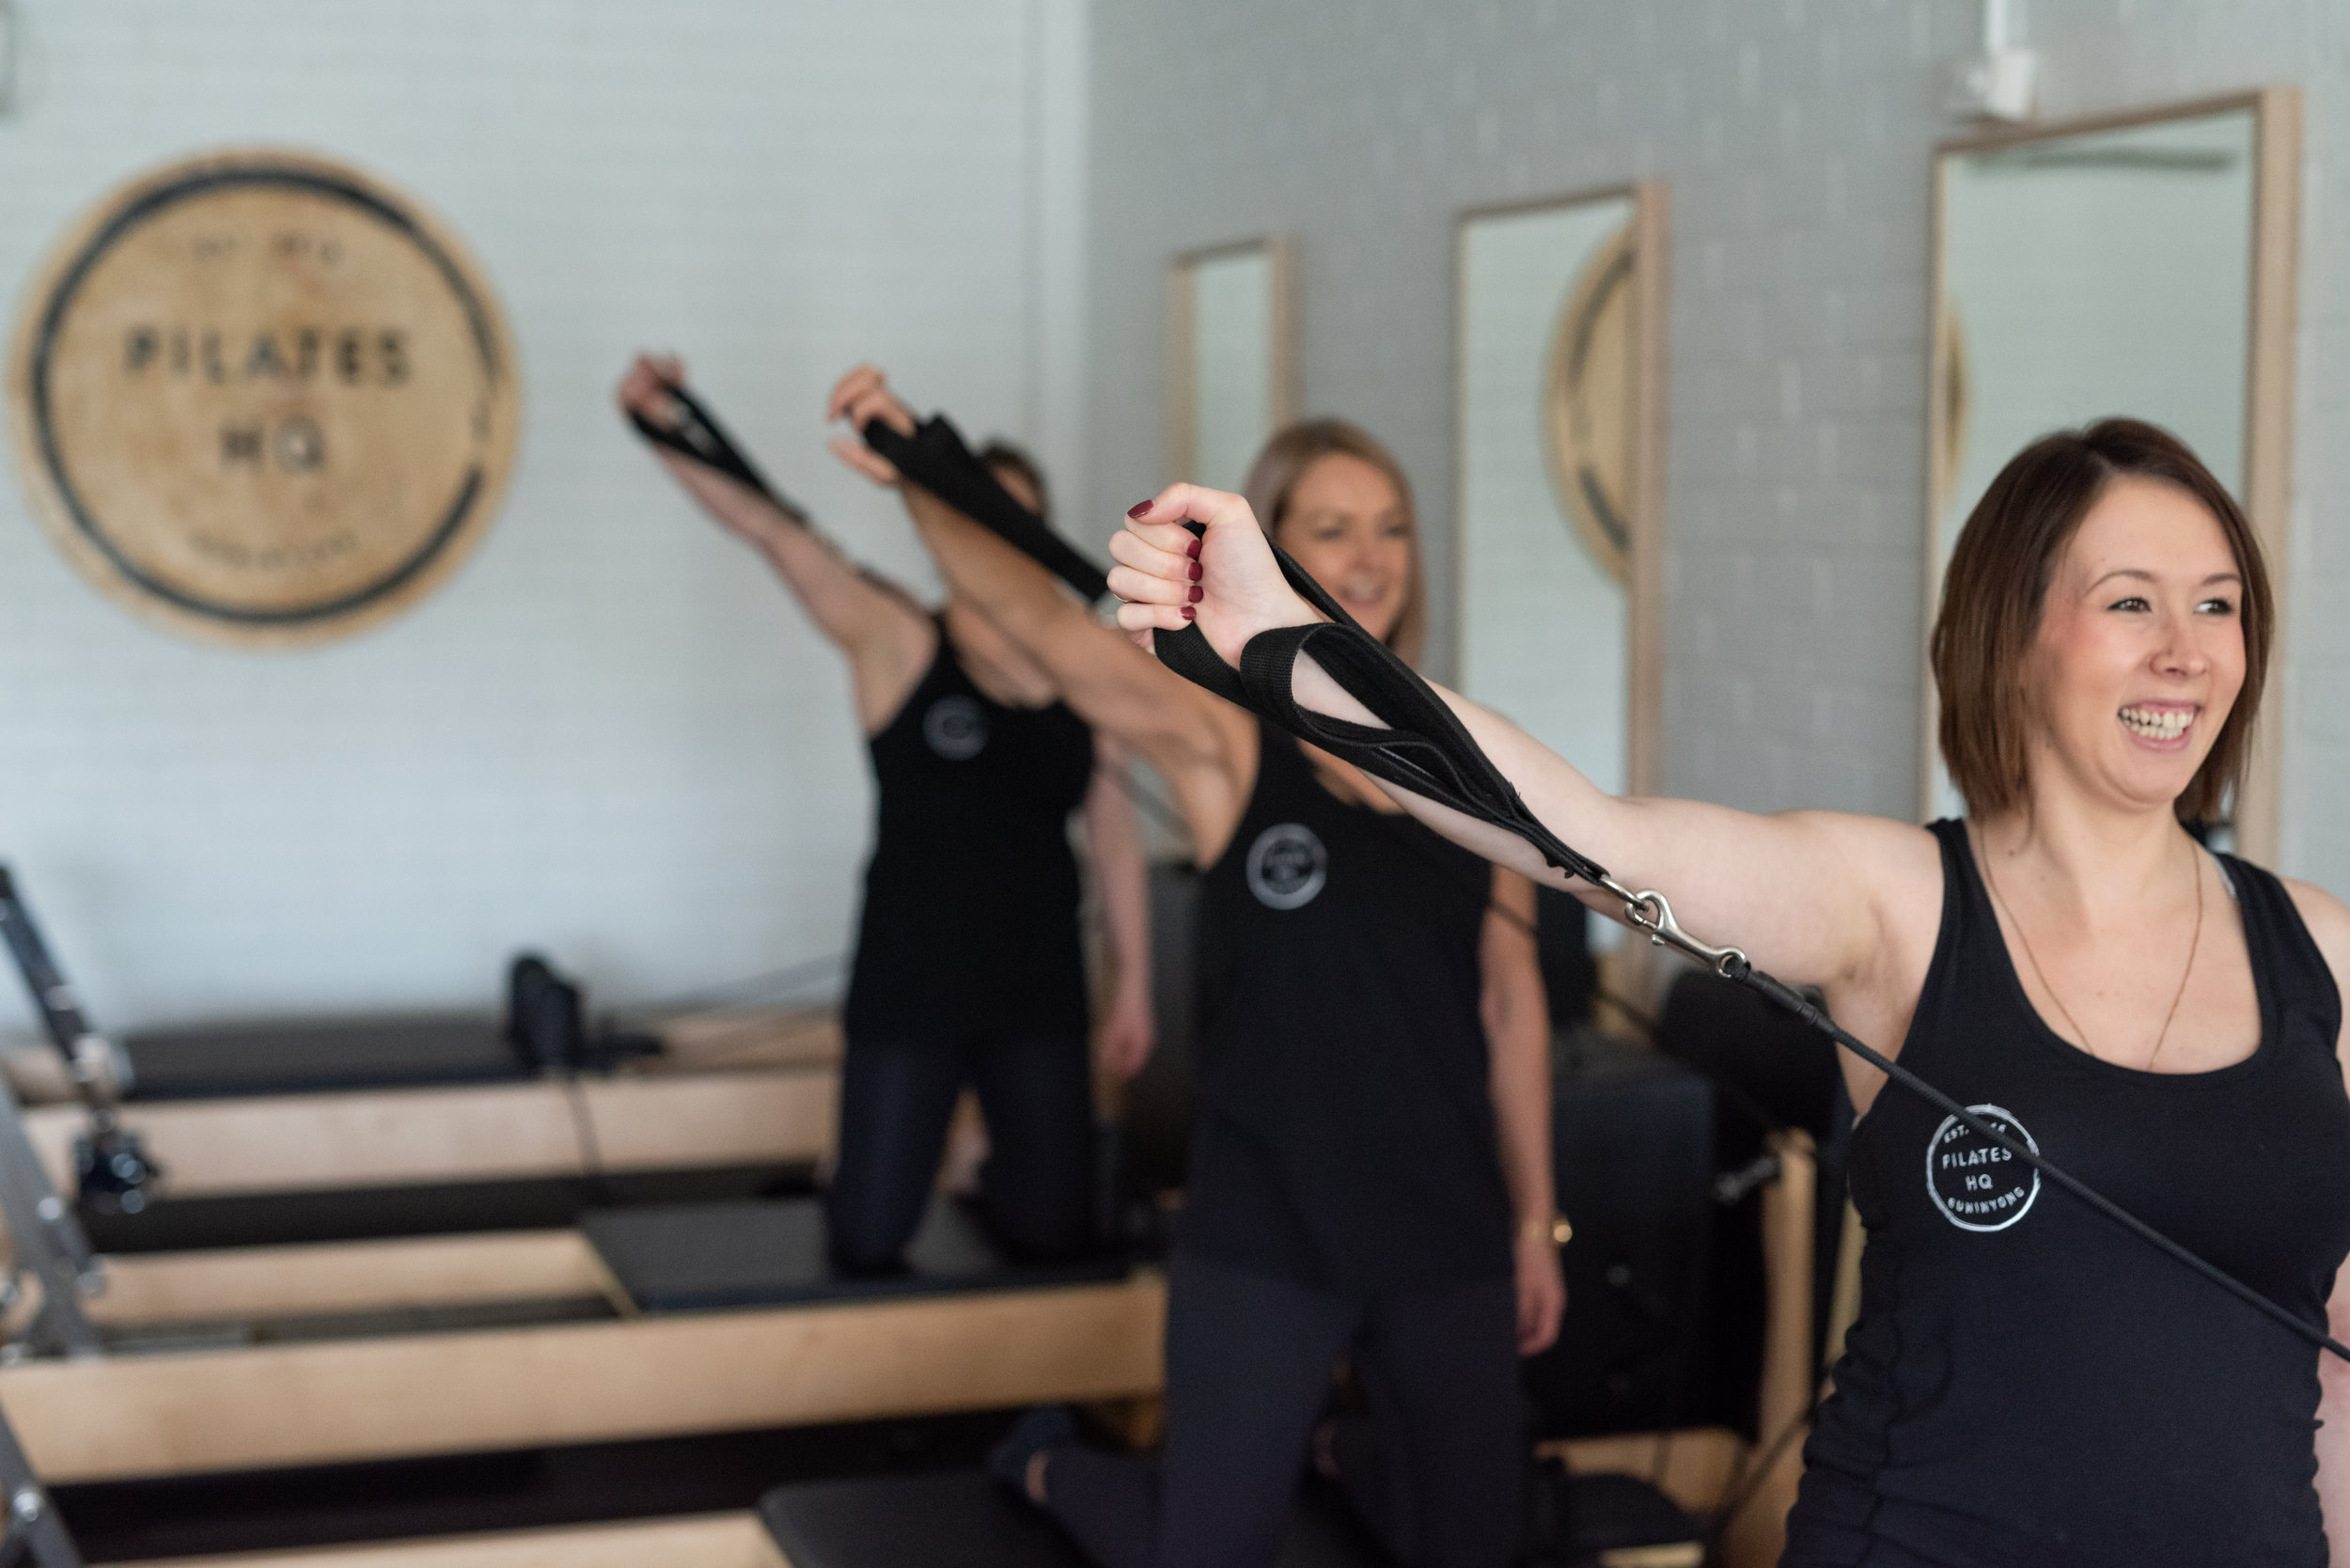 Reformer Pilates Classes, for all levels at Pilates HQ